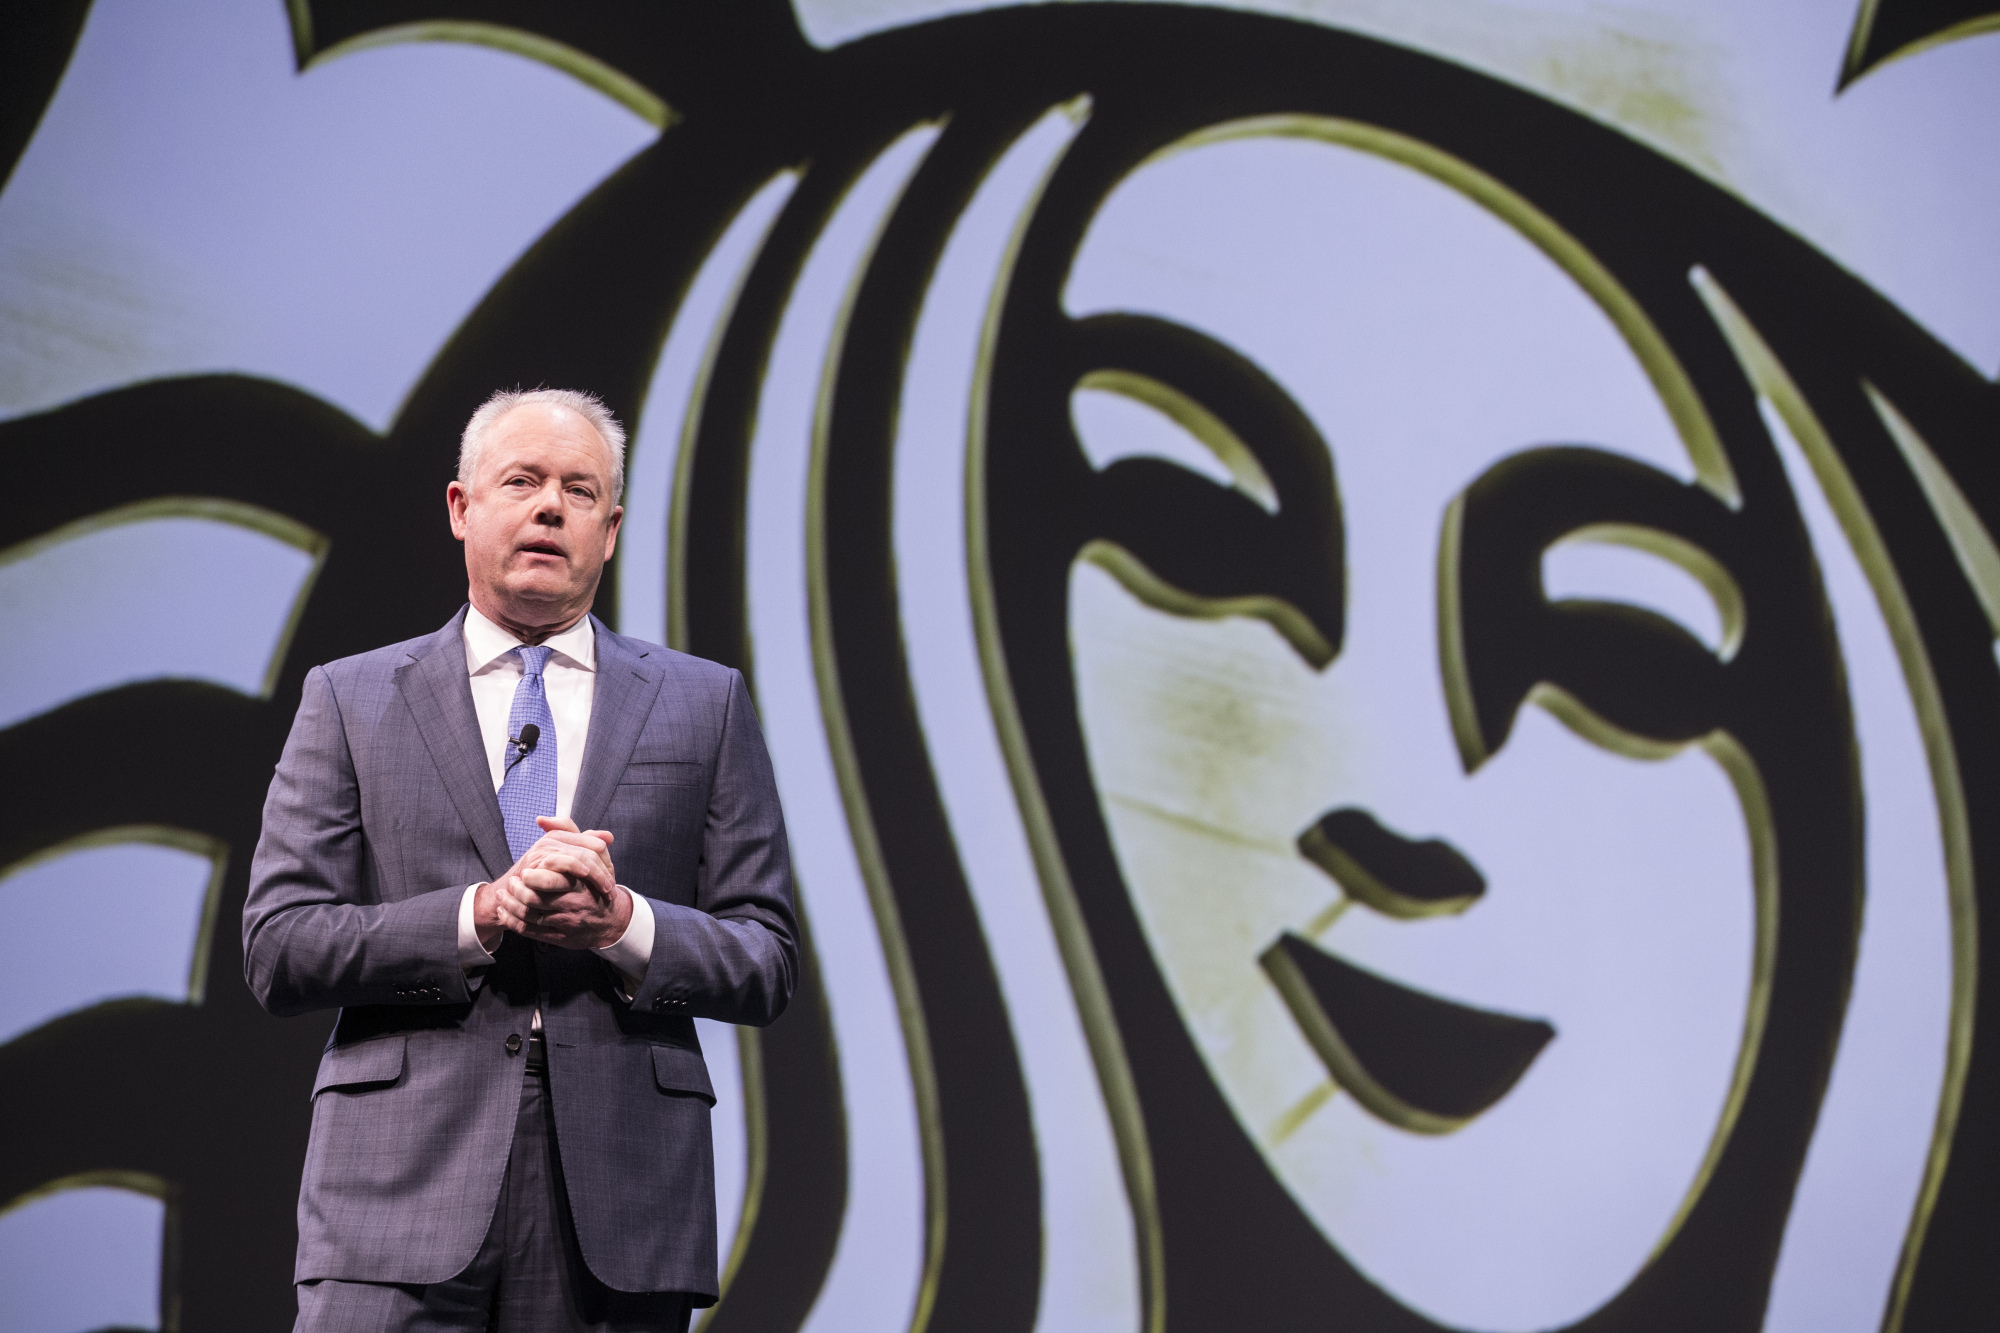 As Schultz Steps Down, Next Starbucks CEO Brings Tech Savvy